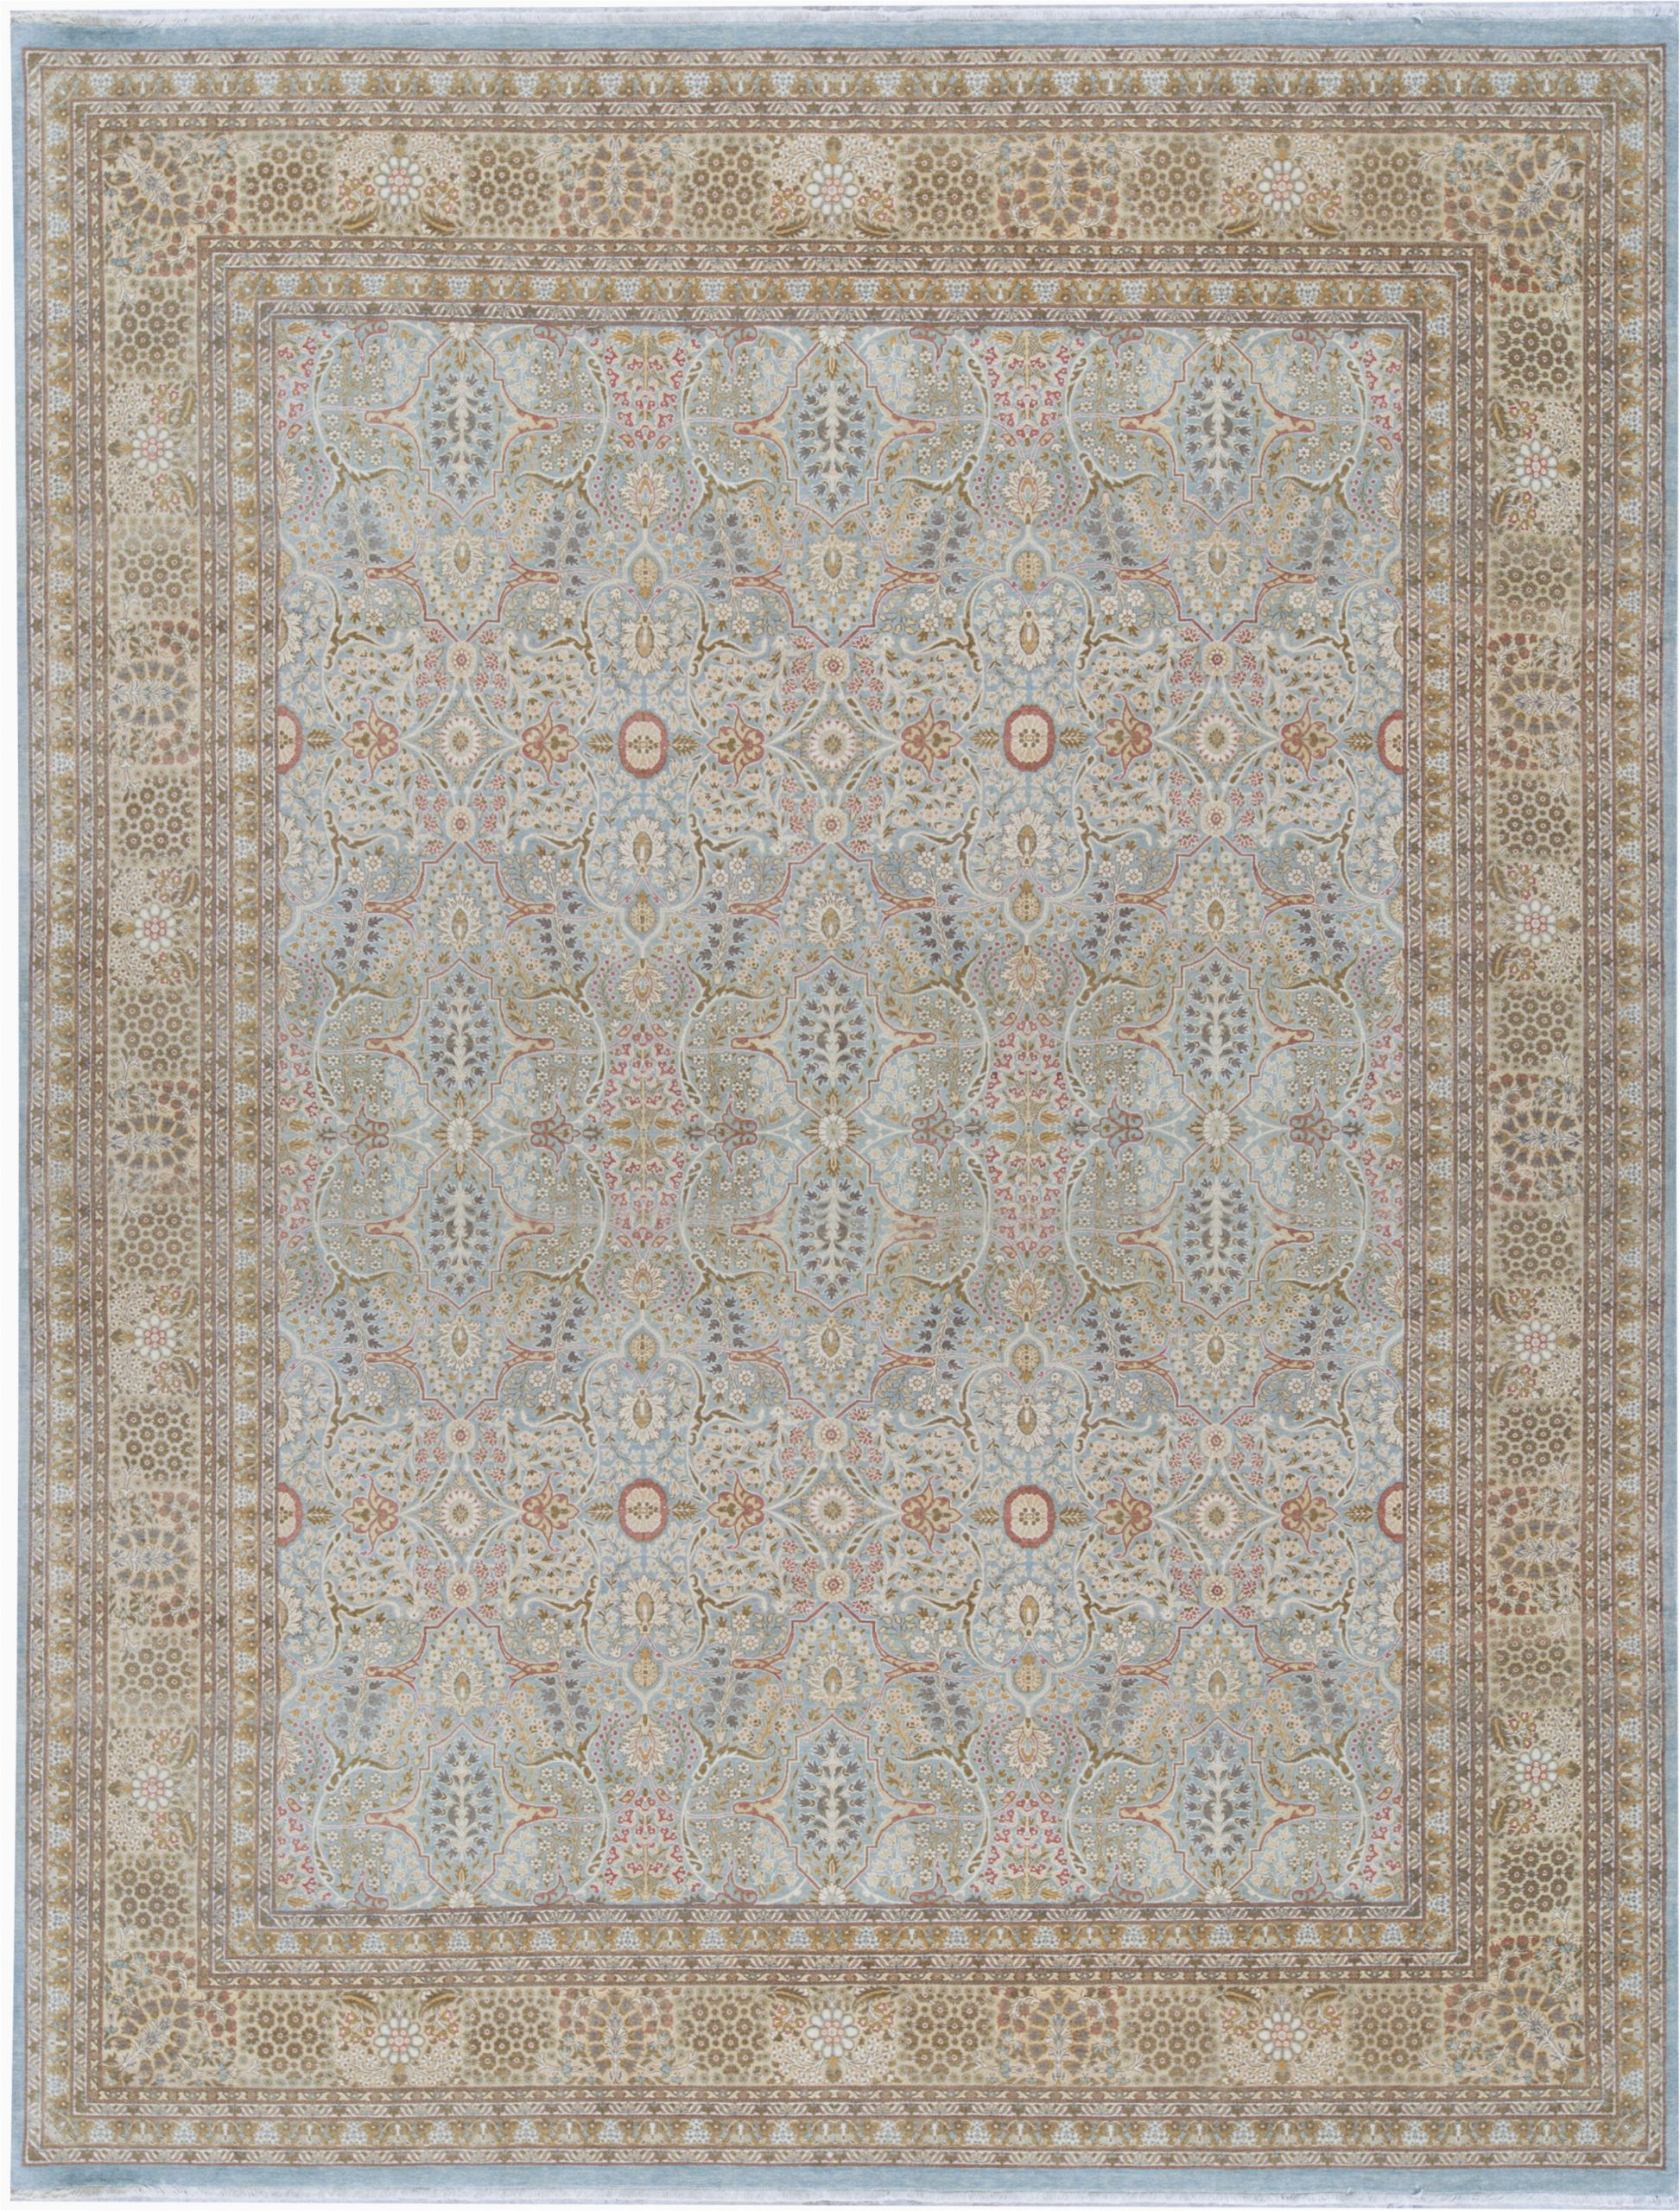 Cream and Light Blue Rug oriental Hand Knotted Wool Light Blue Cream area Rug